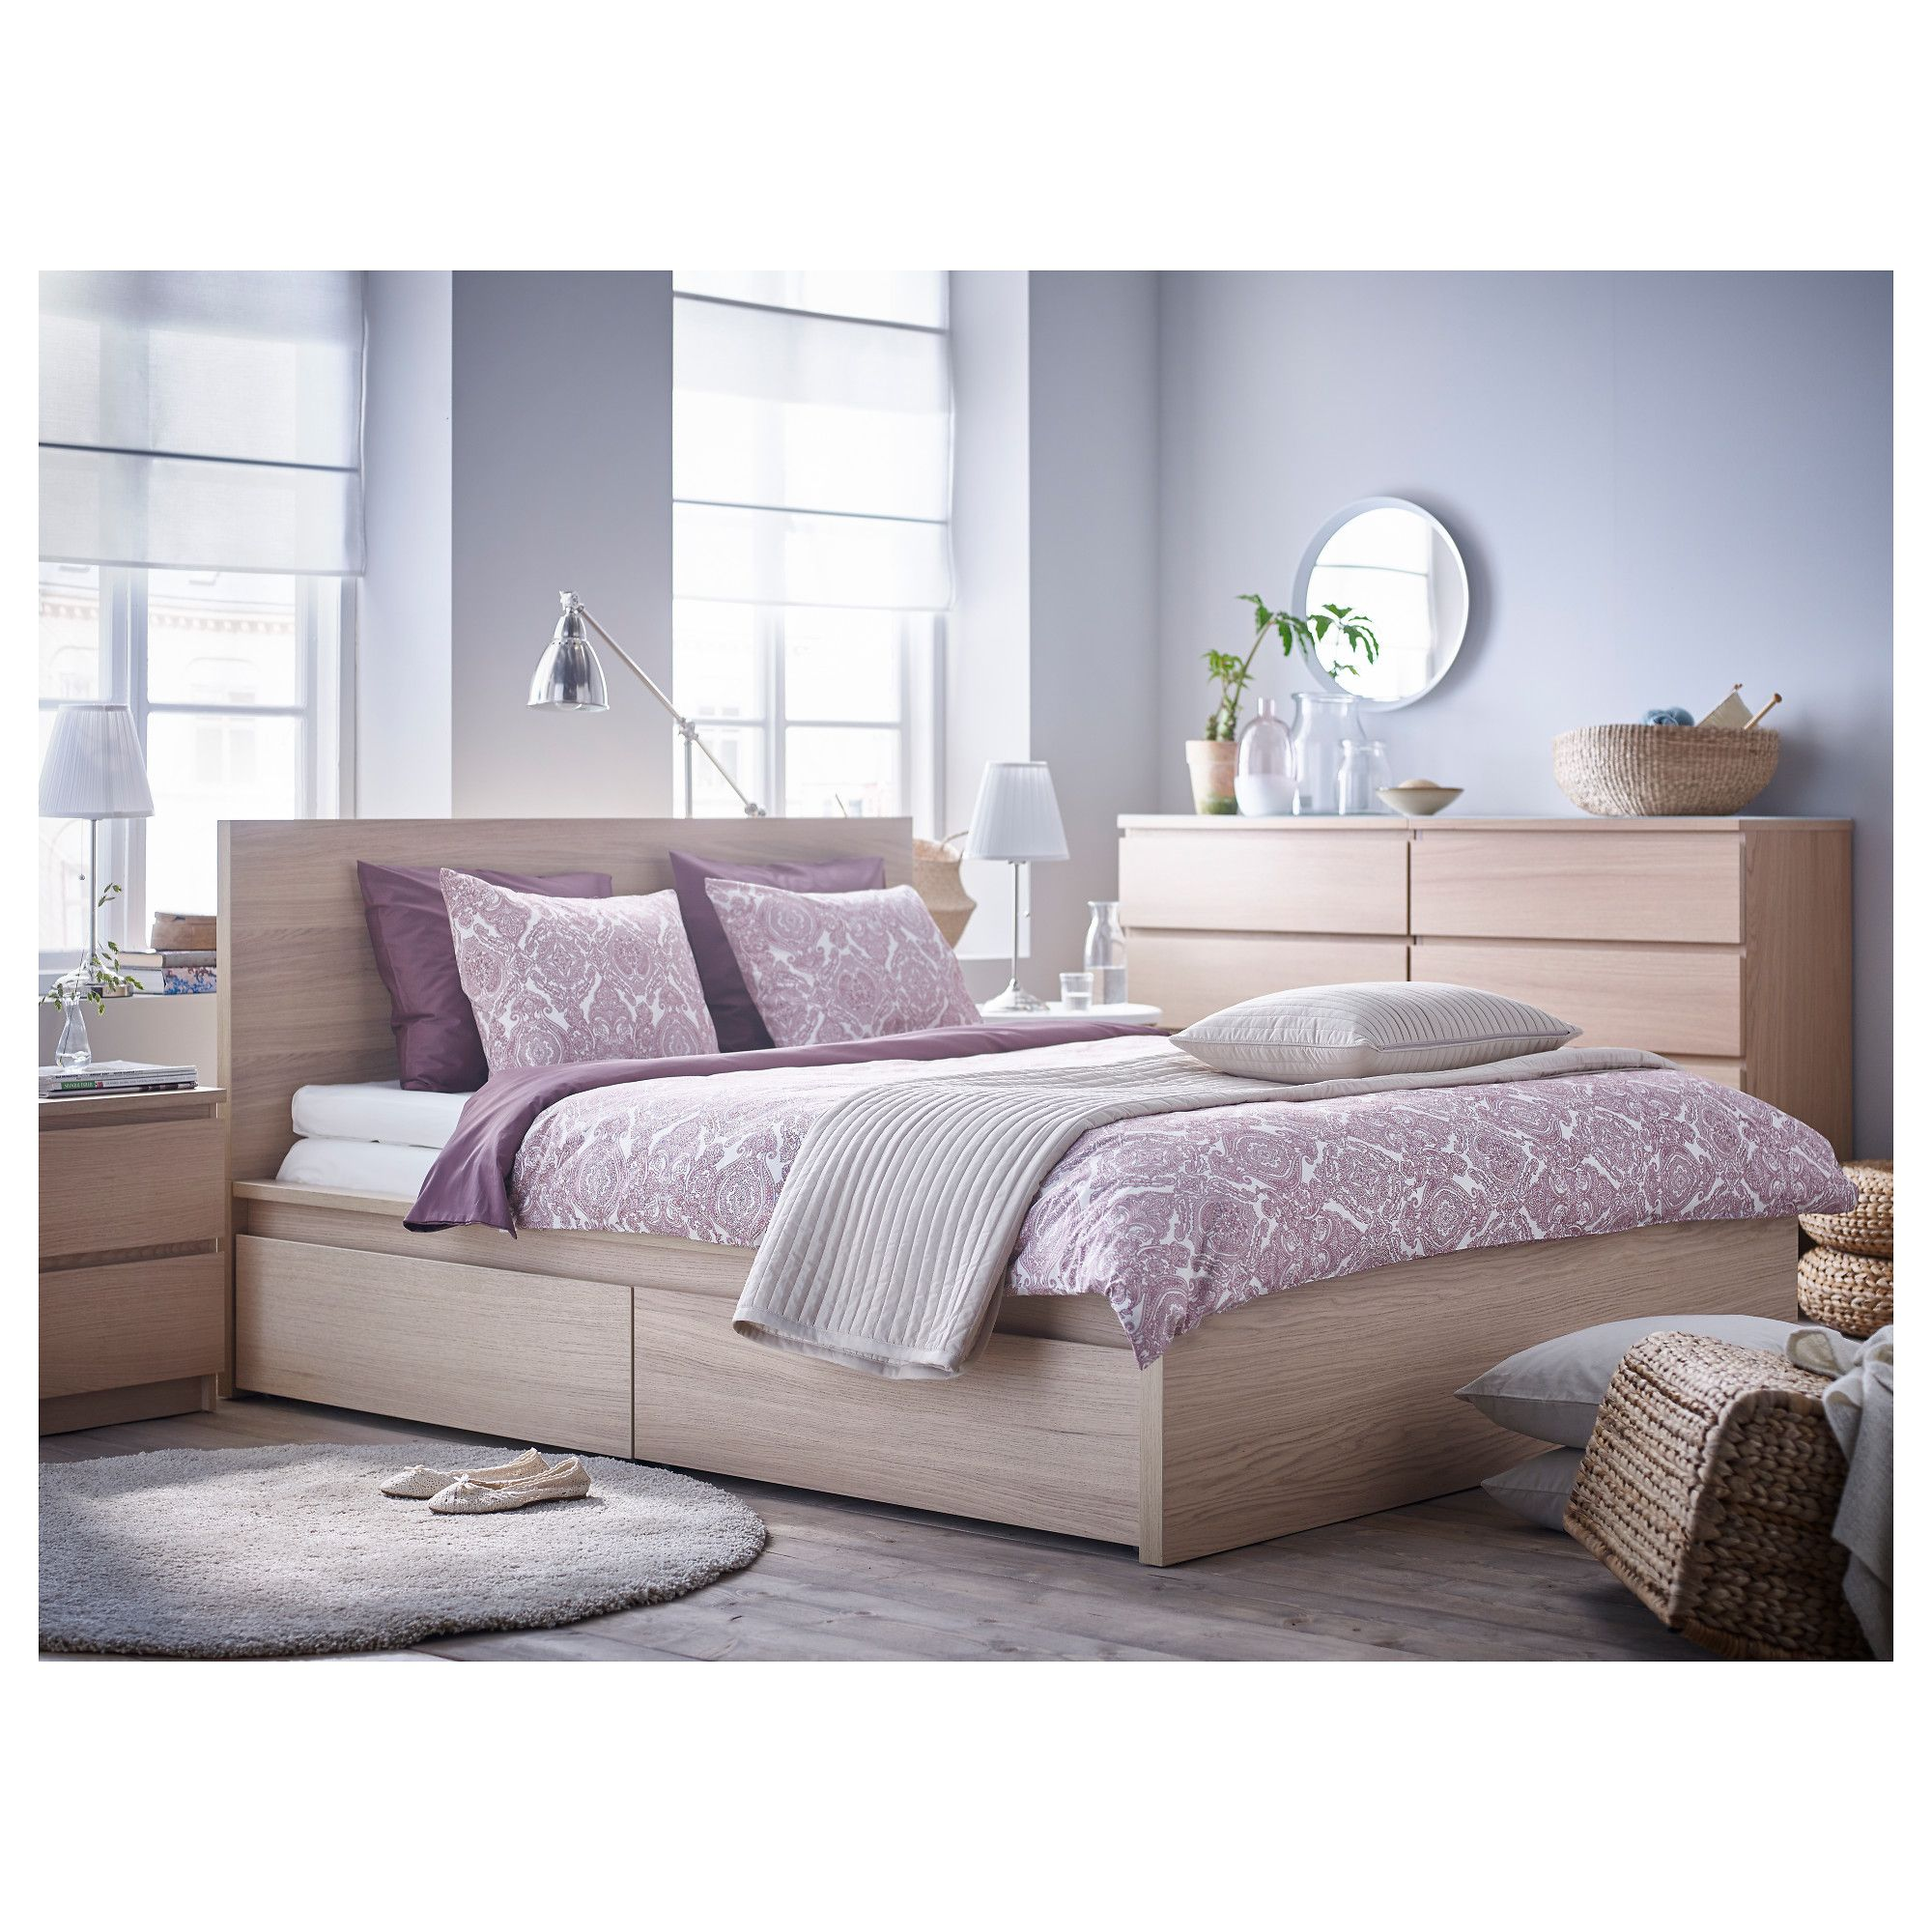 Ikea Malm High Bed Frame 2 Storage Bo Queen Luröy The Large Drawers On Casters Give You An Extra E Under